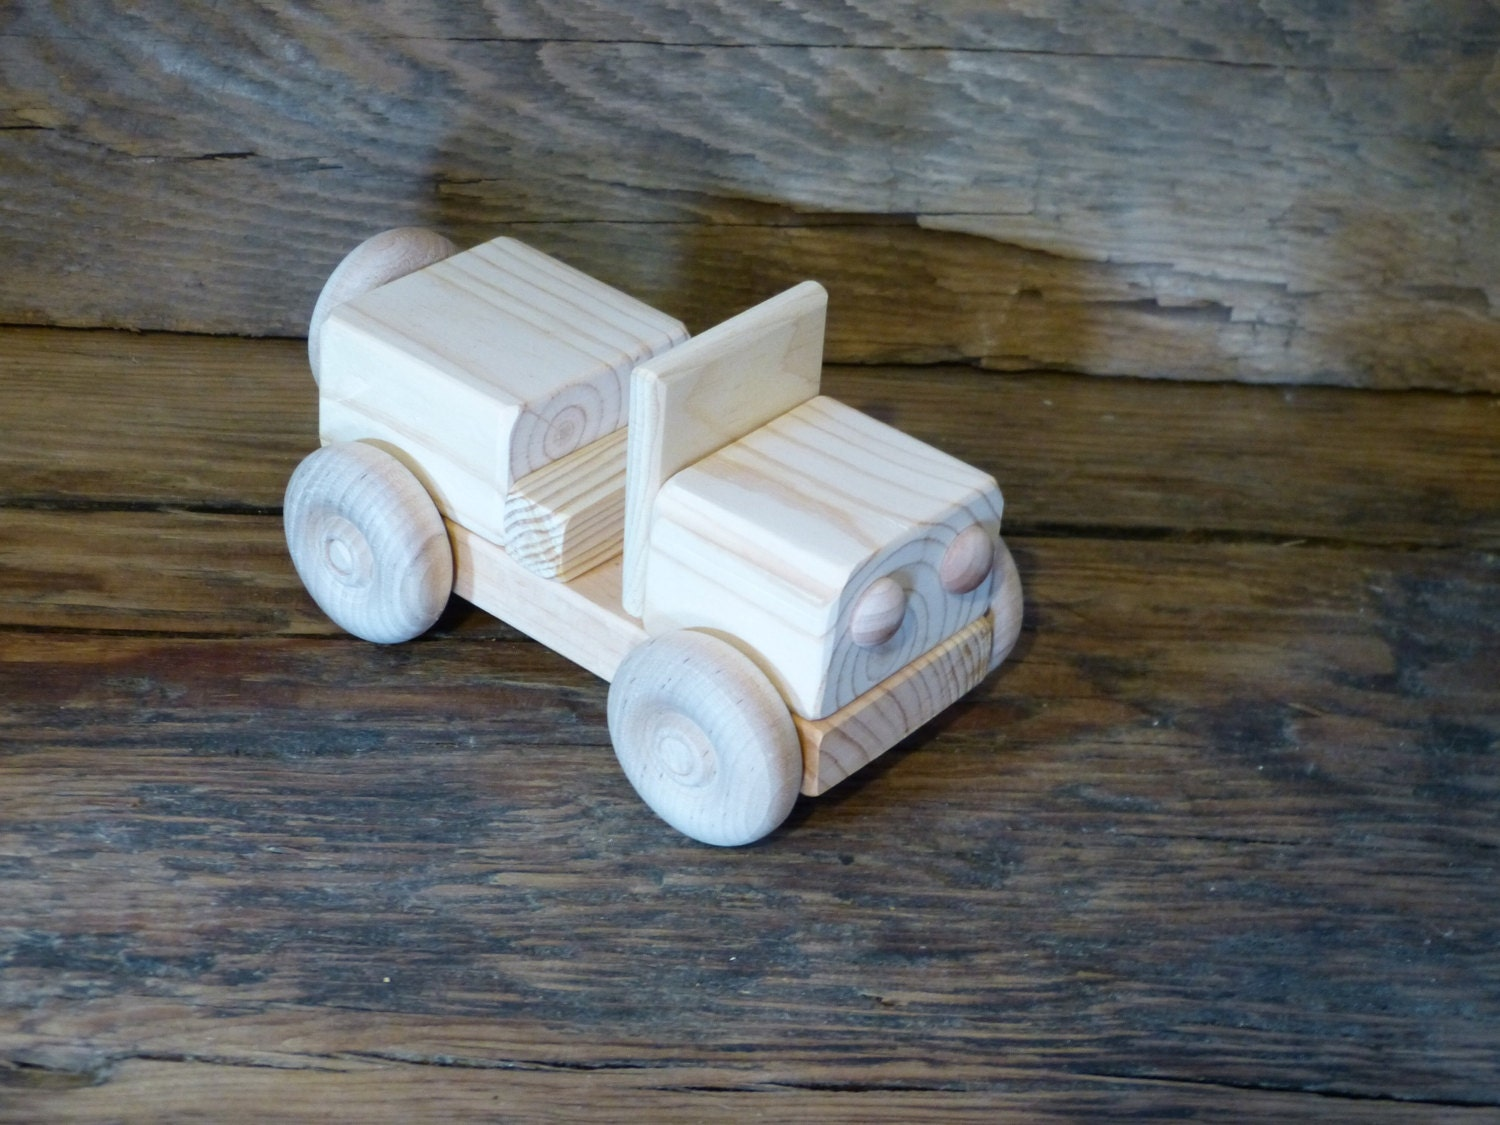 Handmade Wood Toy Jeep Truck Wooden Toys Hand By Outonalimbadk